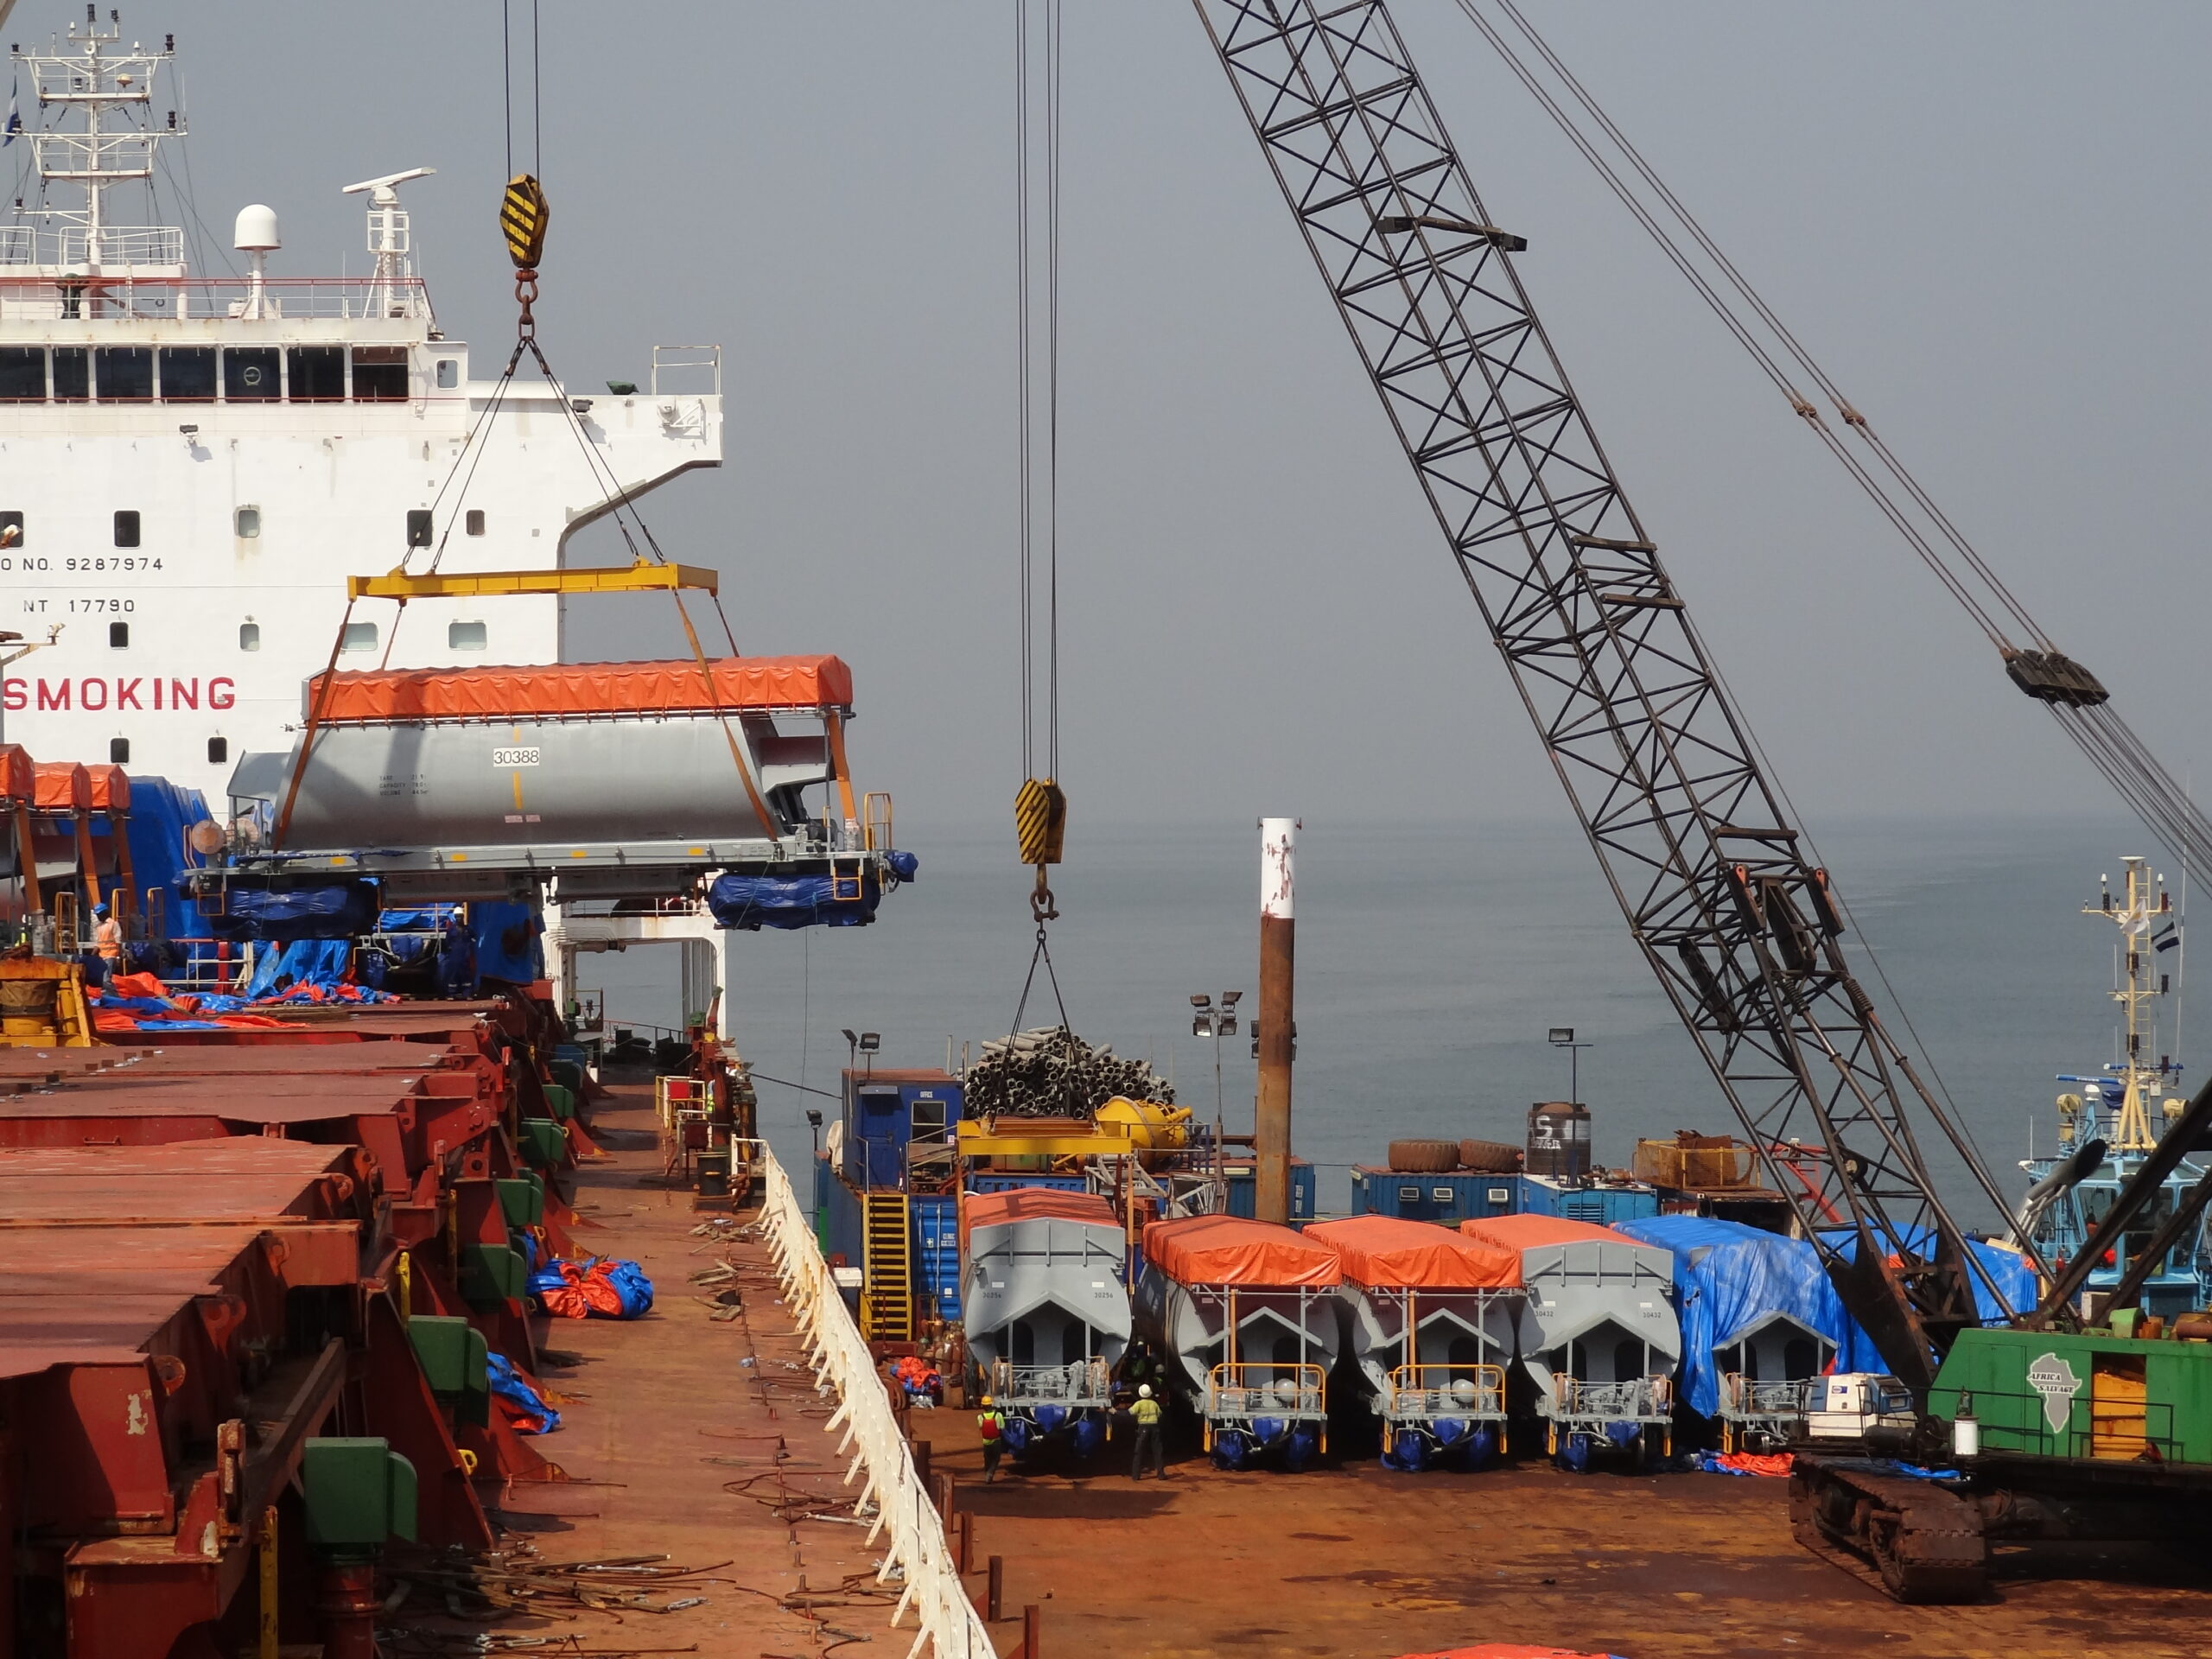 Cargo loading at the harbour